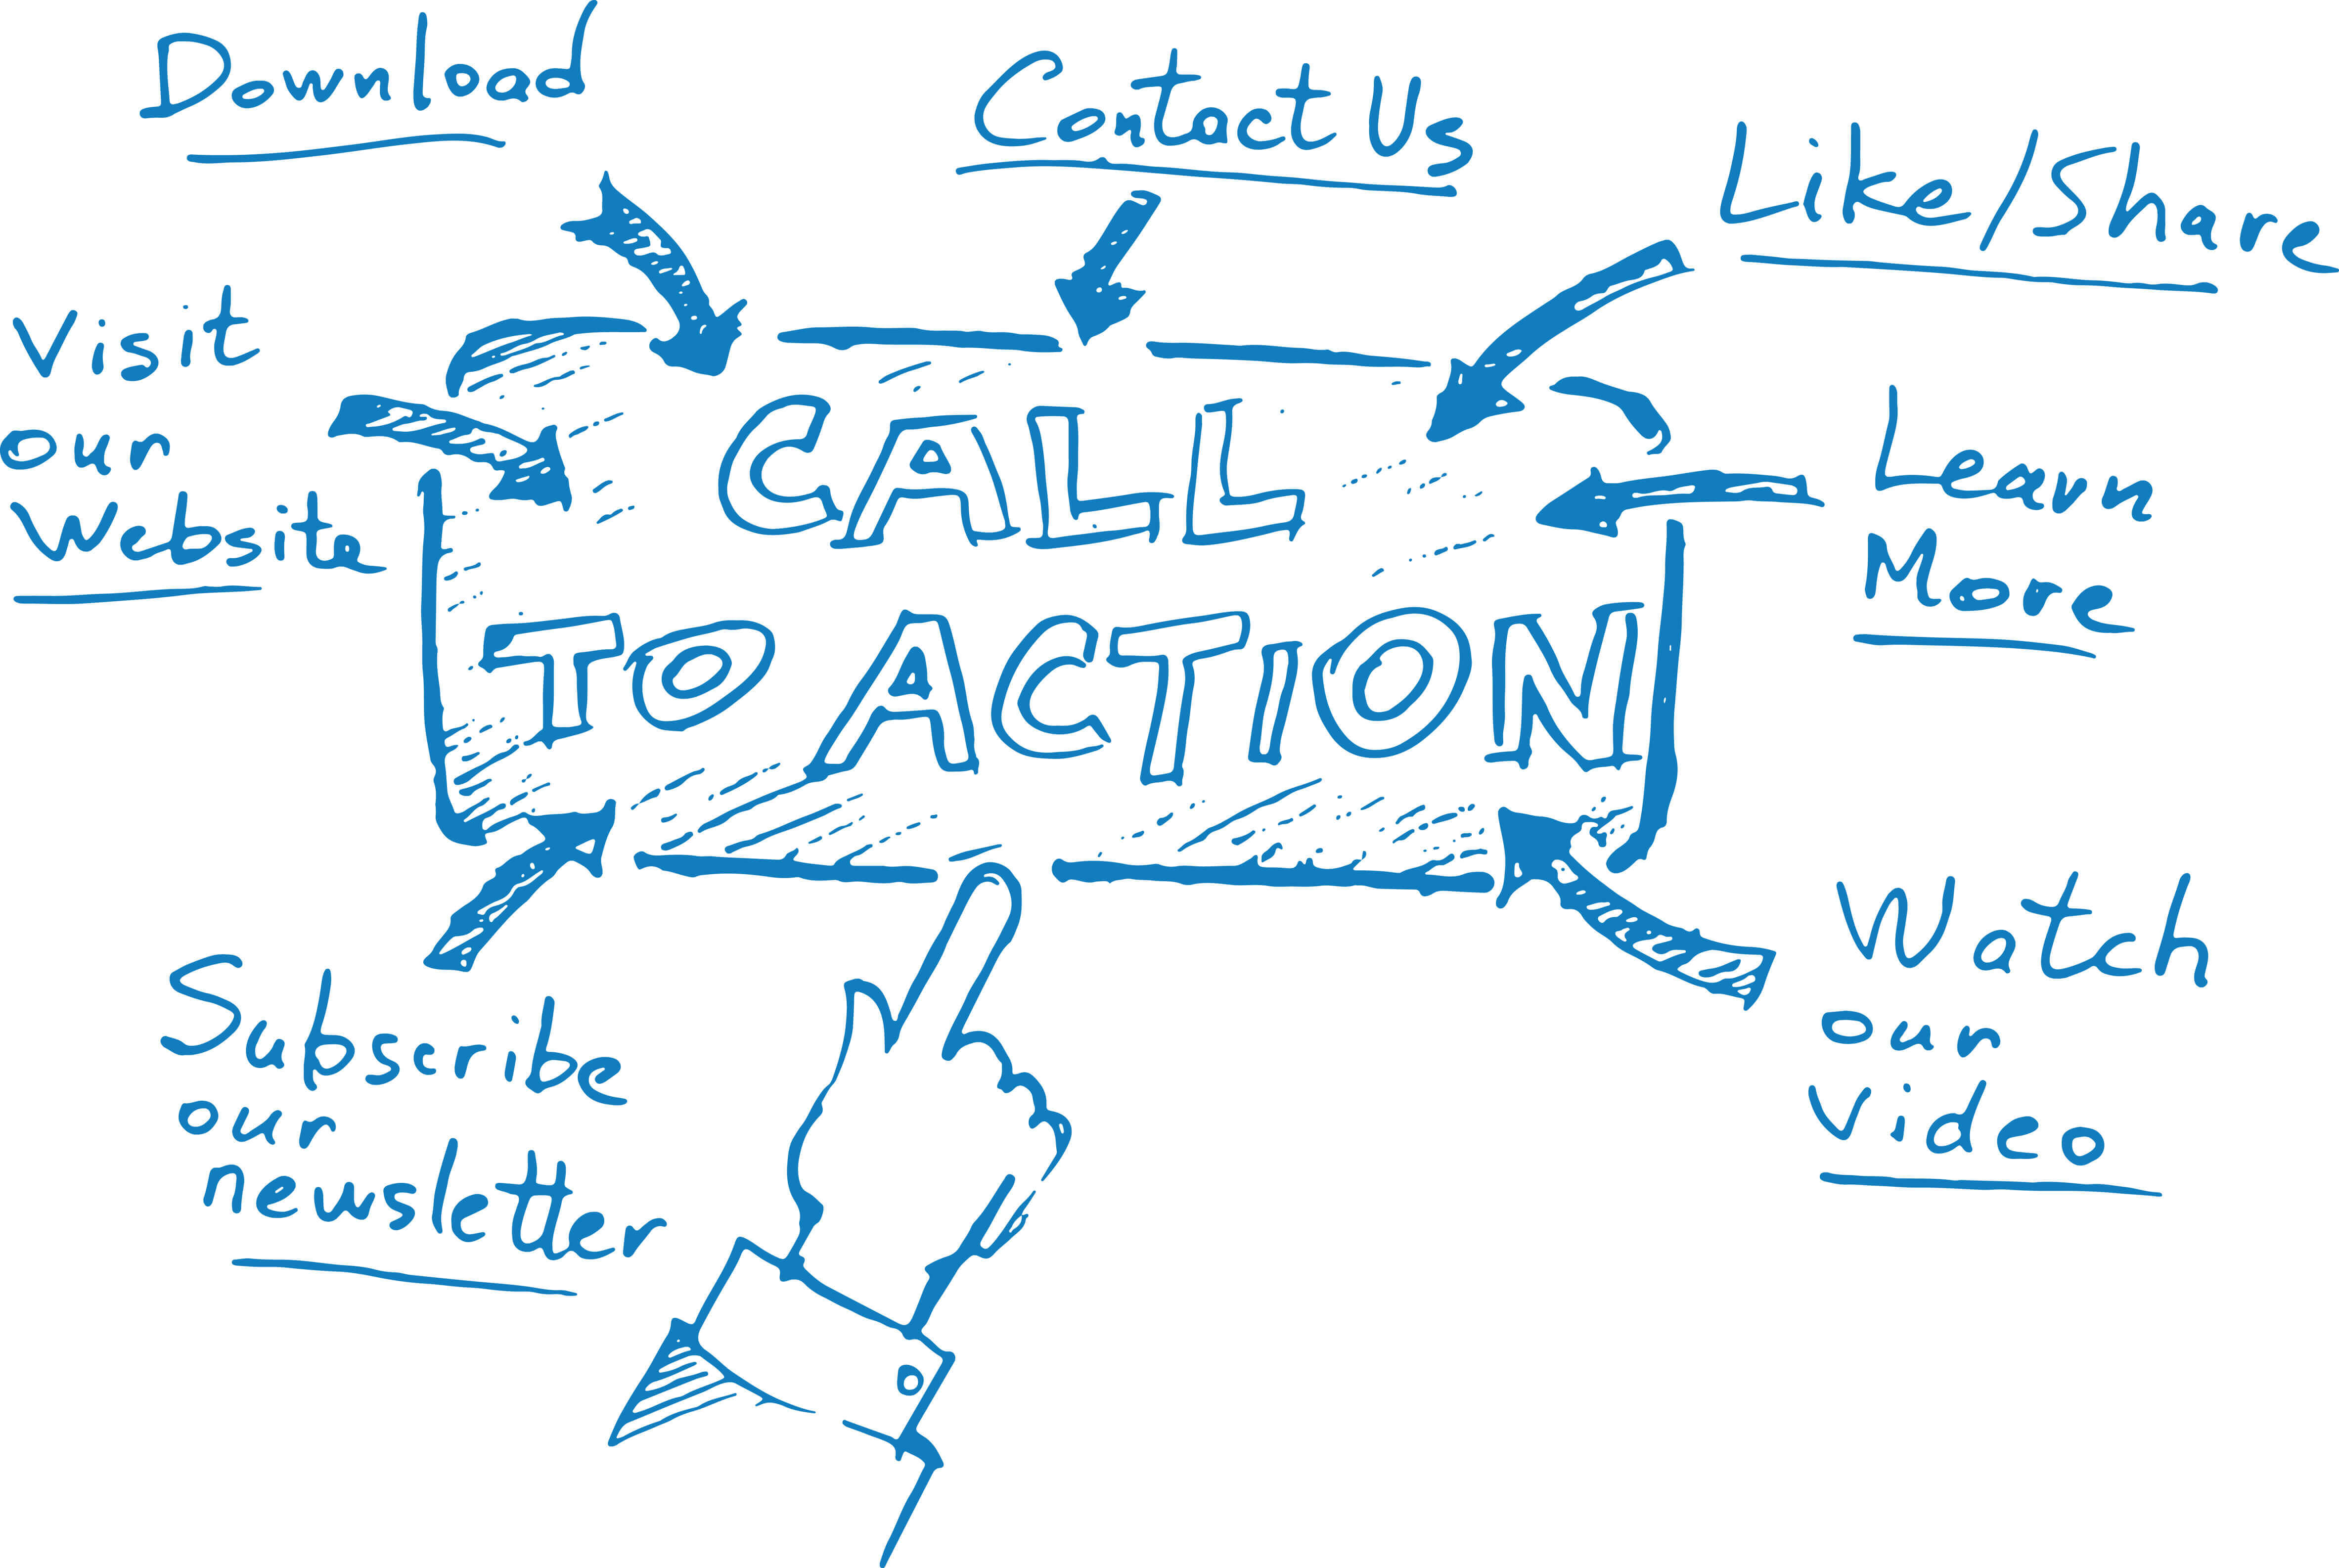 Call to action diagram where multiple examples are illustrated such as download, like/share, subscribe to newsletter, visit website, etc